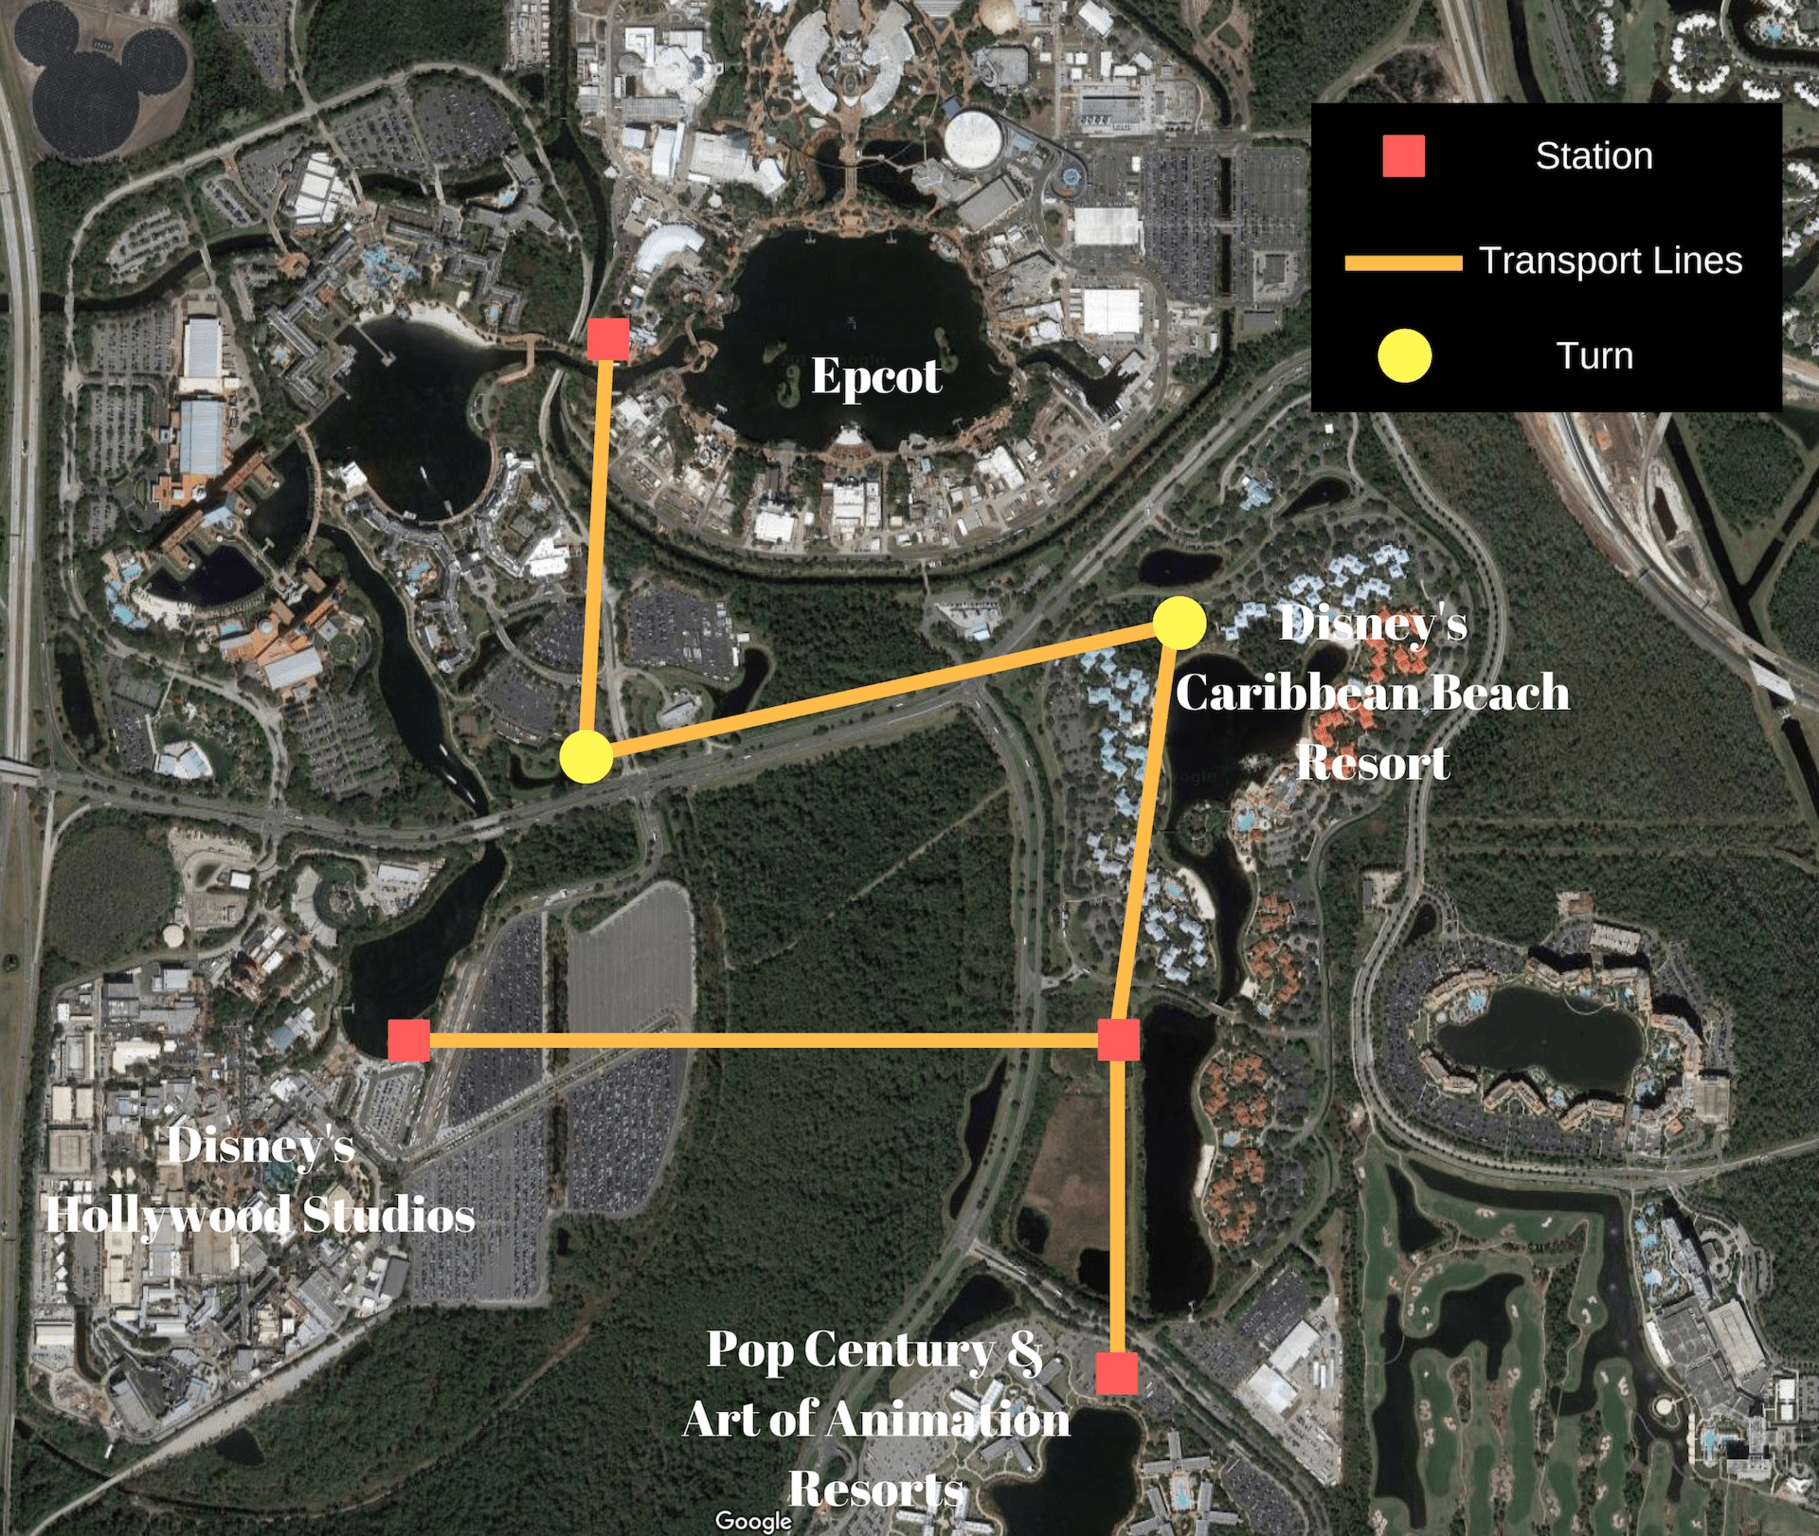 Proposed route for the gondola system at Walt Disney World.